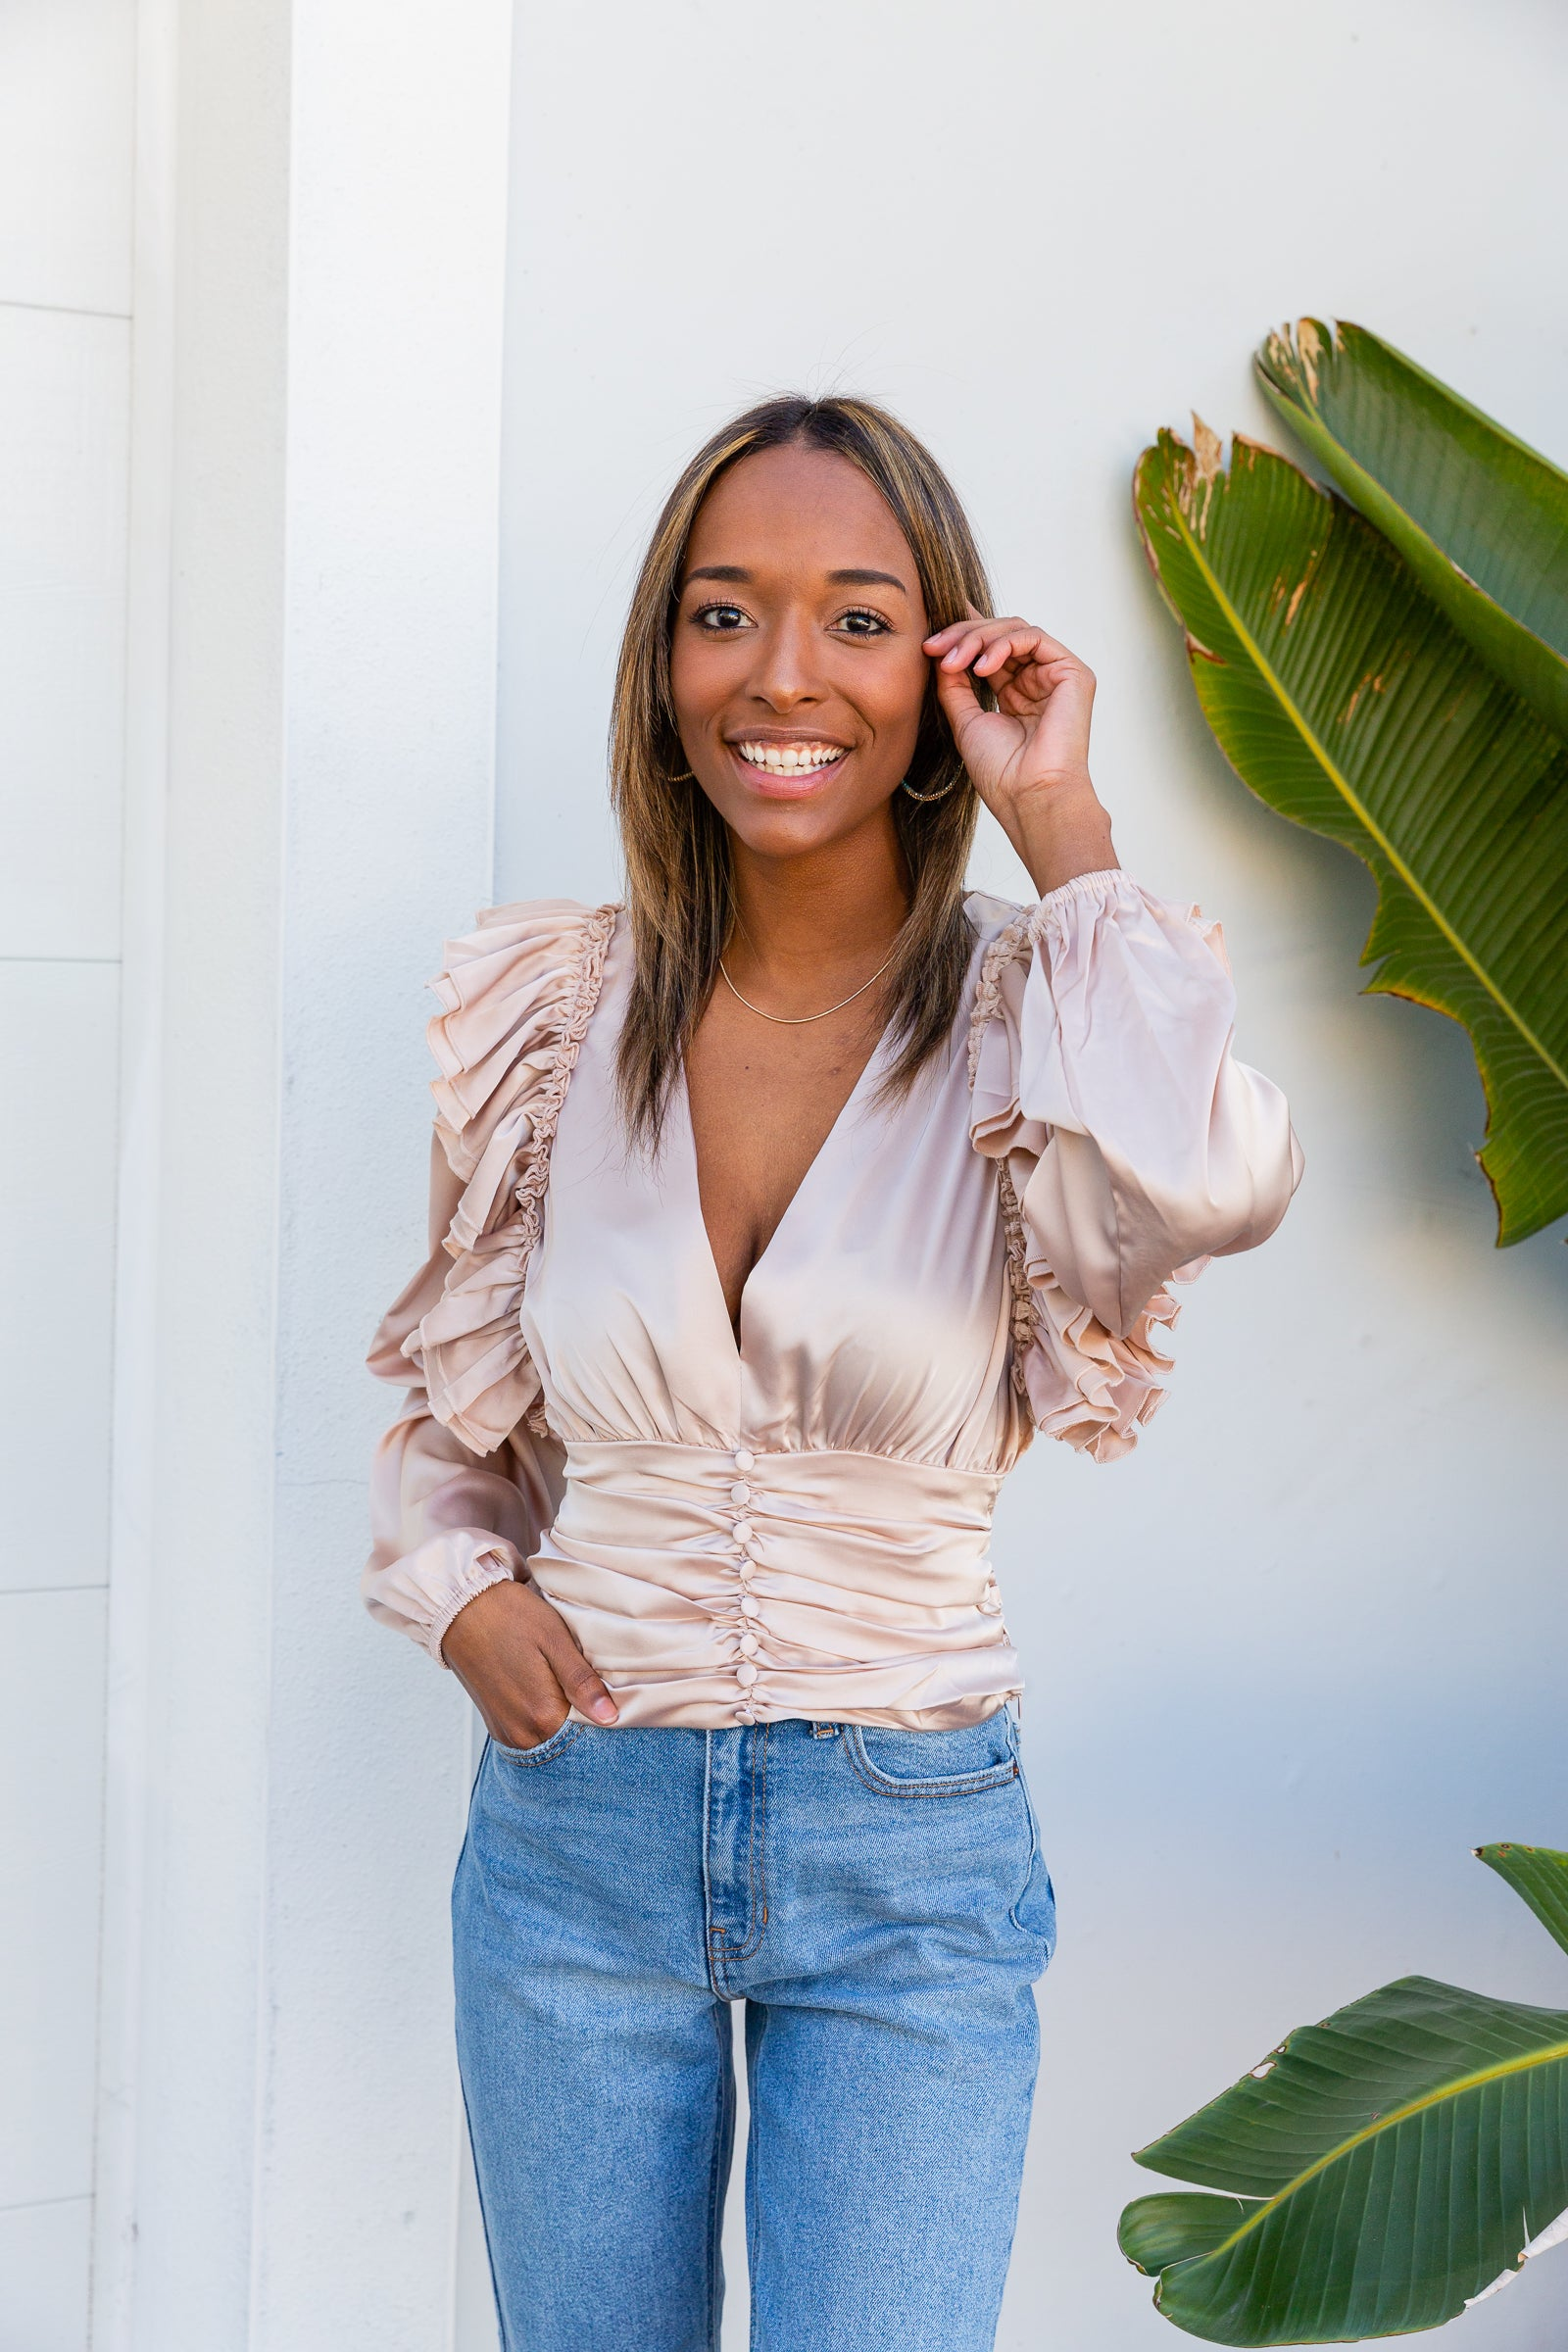 Long elastic cuffed sleeves meet a ruffle hem that goes down the shoulders of a deep v-neckline bodice. At the waistband, the top meets a button-down detail atop gathered fabric.